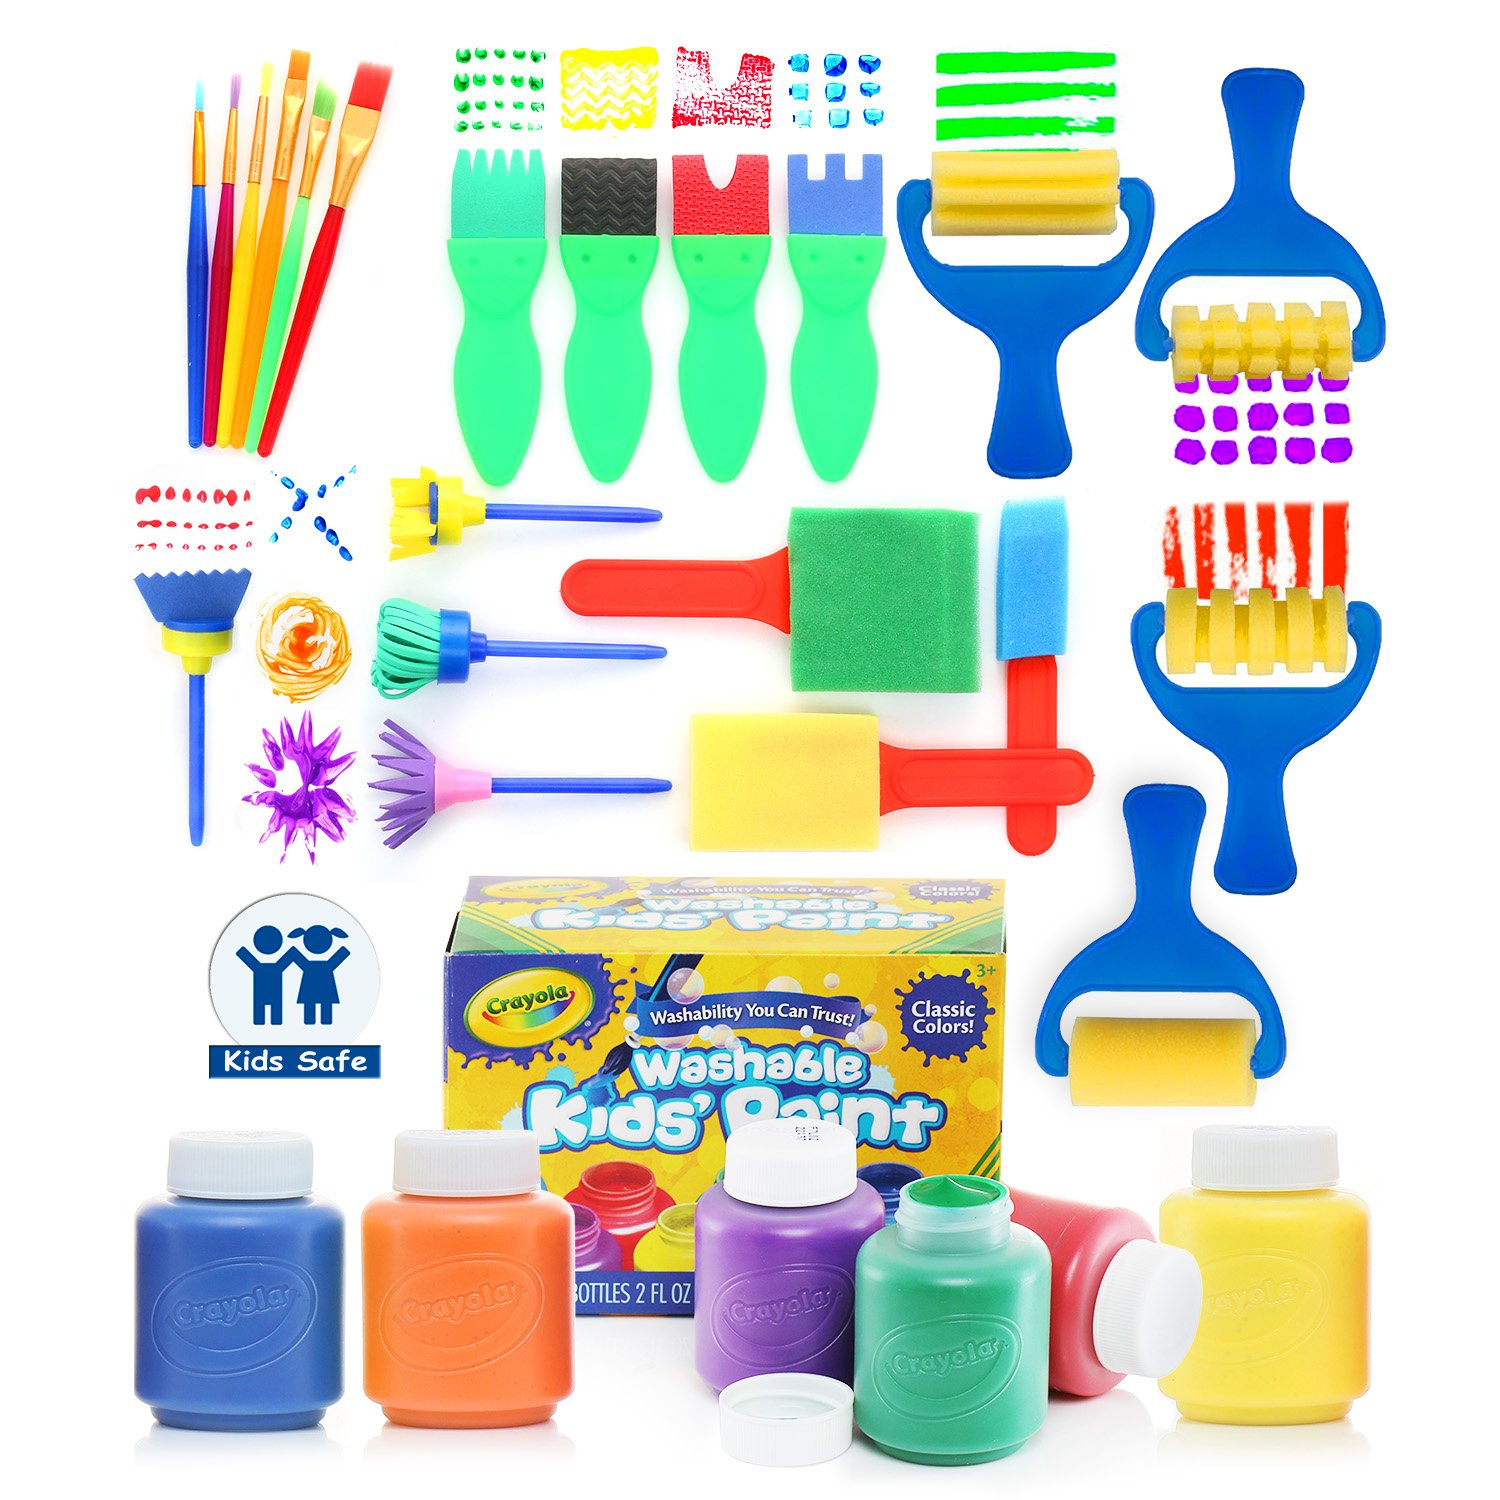 glokers Early Learning Kids Paint Set, 28 Piece Mini Flower Sponge Paint Brushes. Assorted Painting Drawing Tools In a Clear Durable Storage Pouch. Including 6 Crayola Washable Kids Paint 4336960690